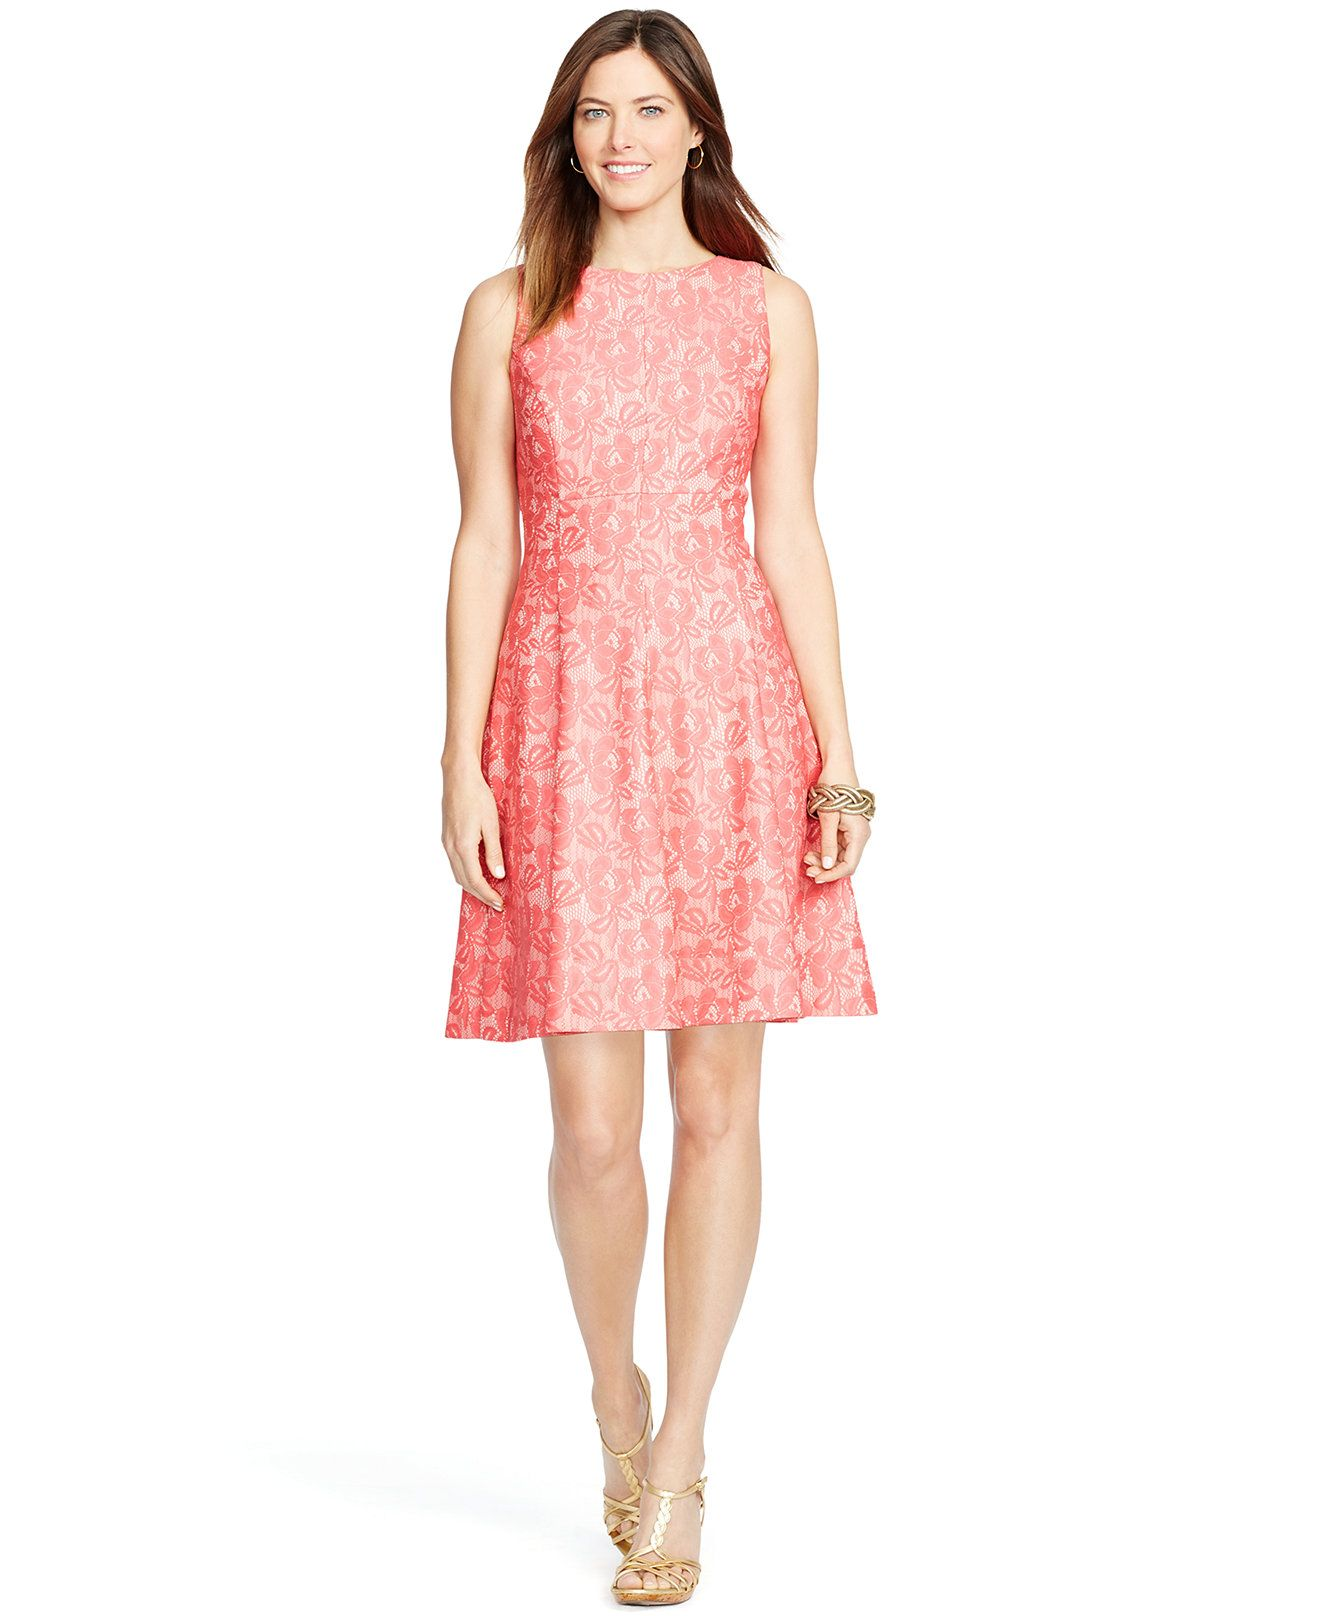 American Living Sleeveless Lace Dress - Dresses - Women - Macy\'s ...